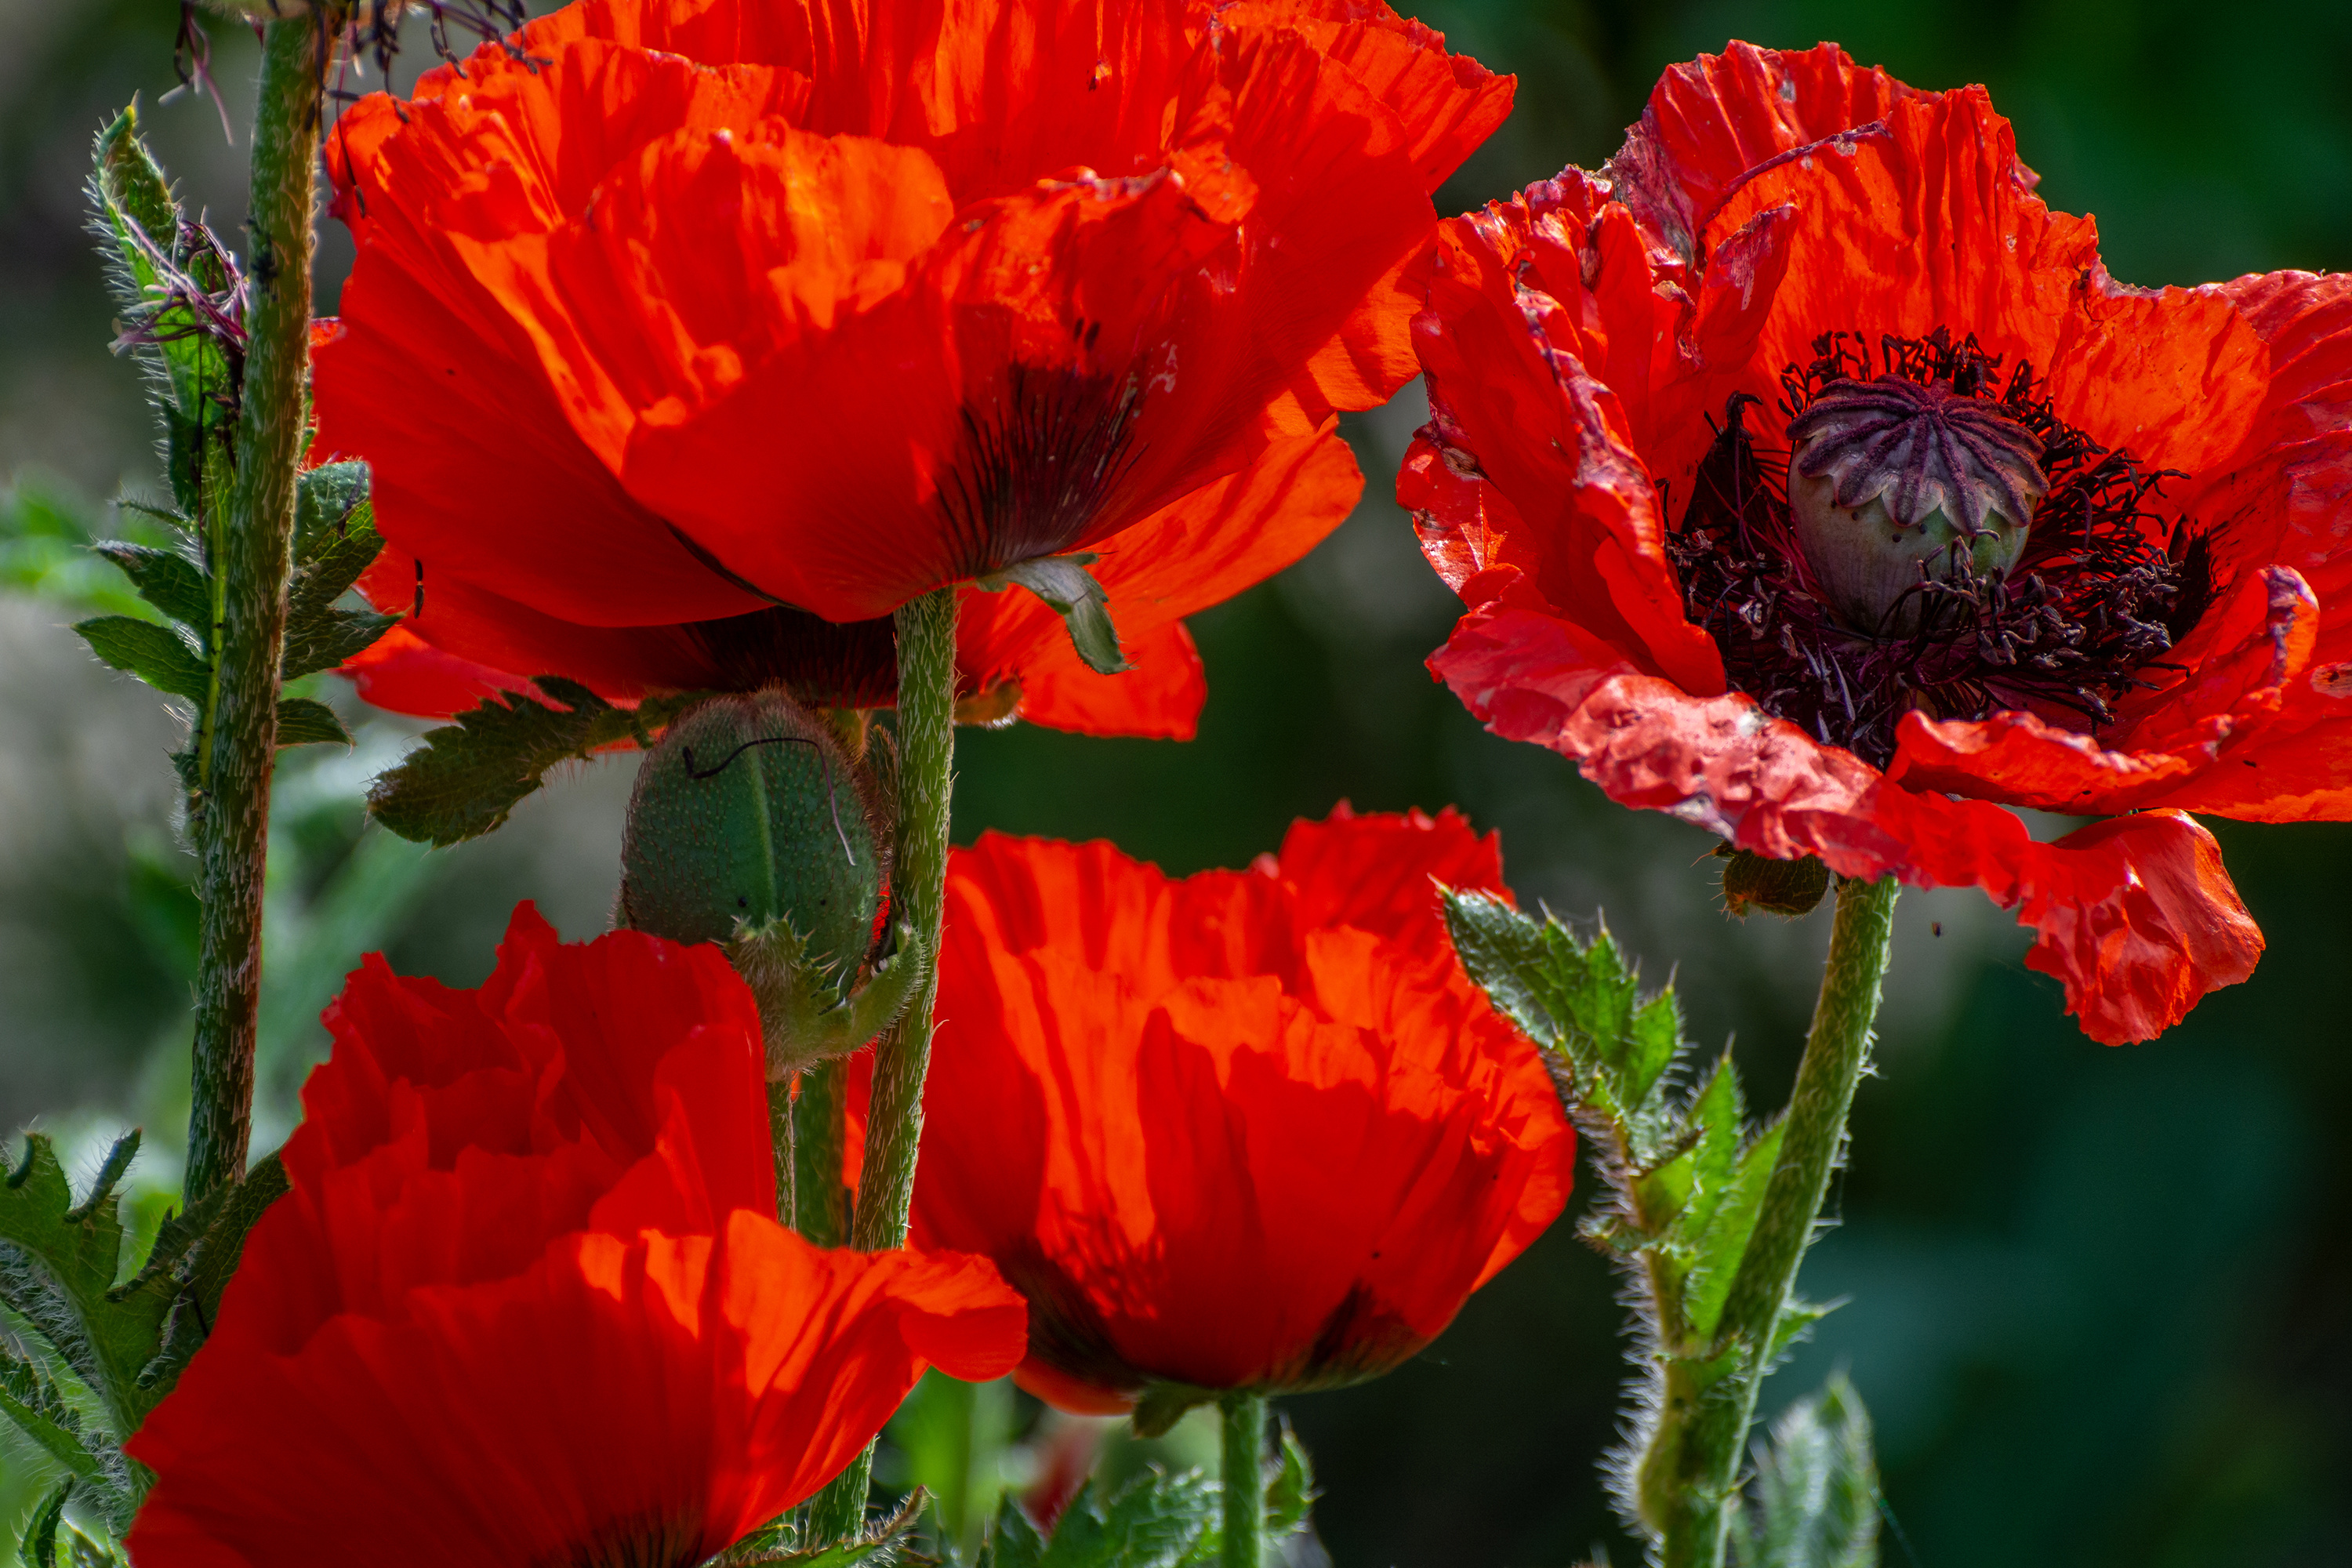 Wallpaper Big red poppies with buds in the sun